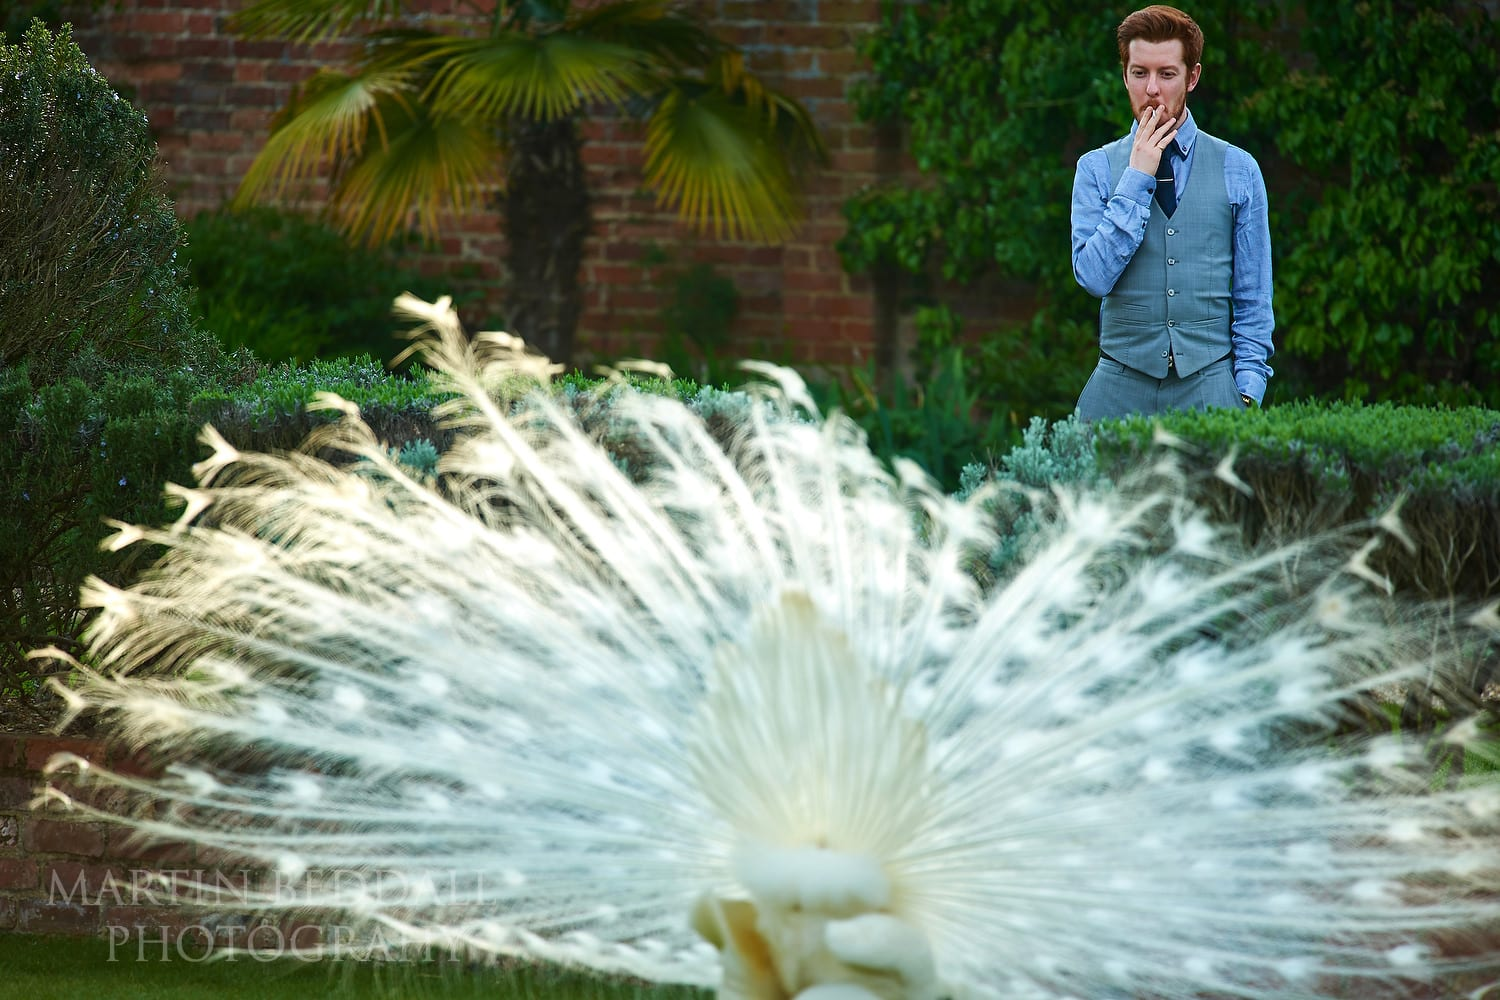 Guest and a peacock at Northbrook Park